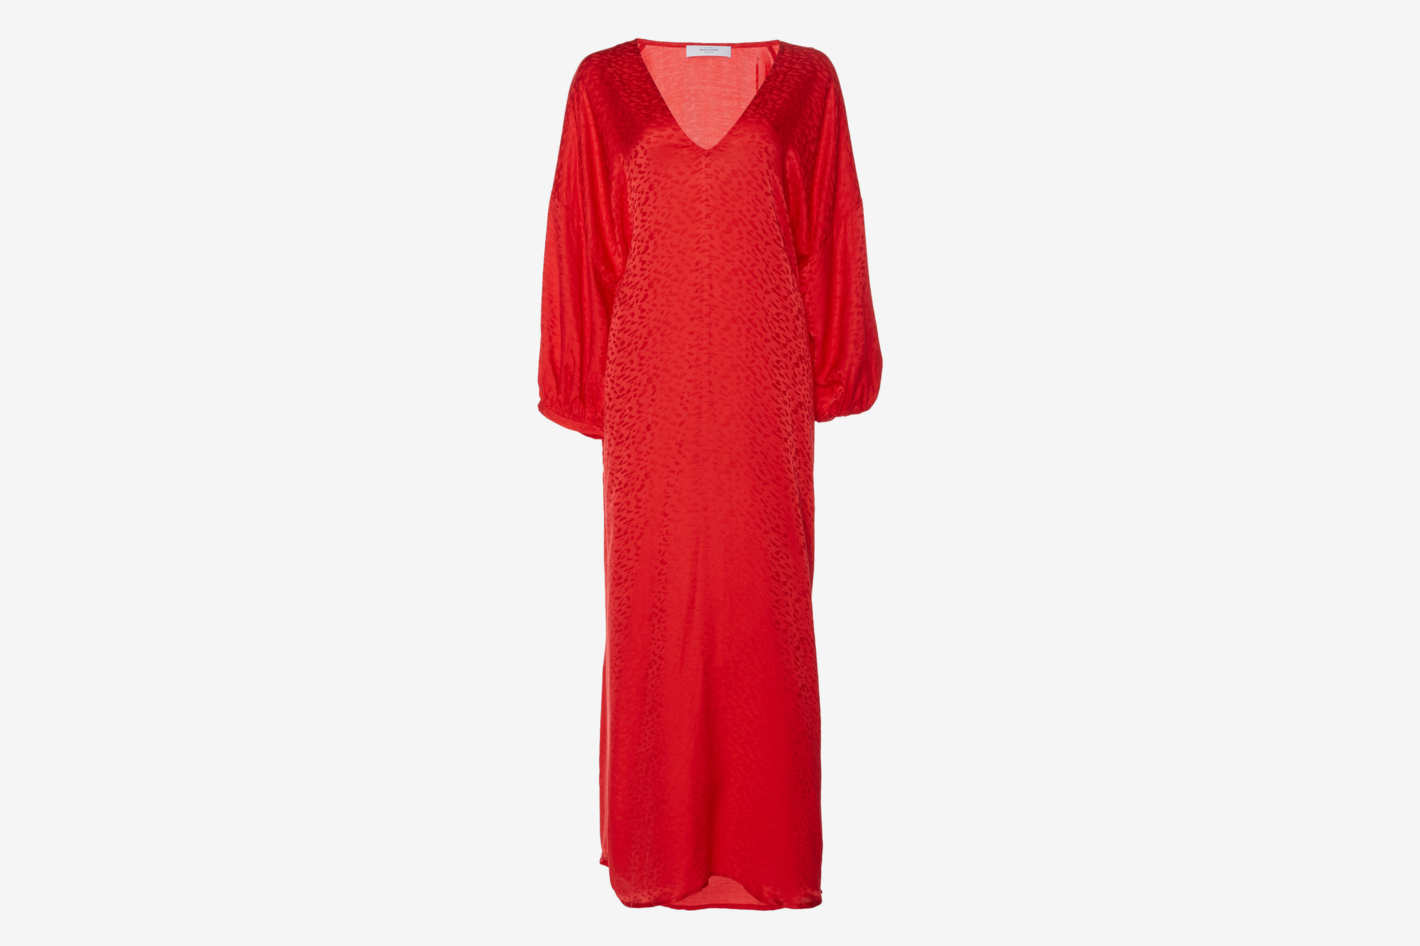 Roseanna Ferrari Season Puff Sleeve Dress